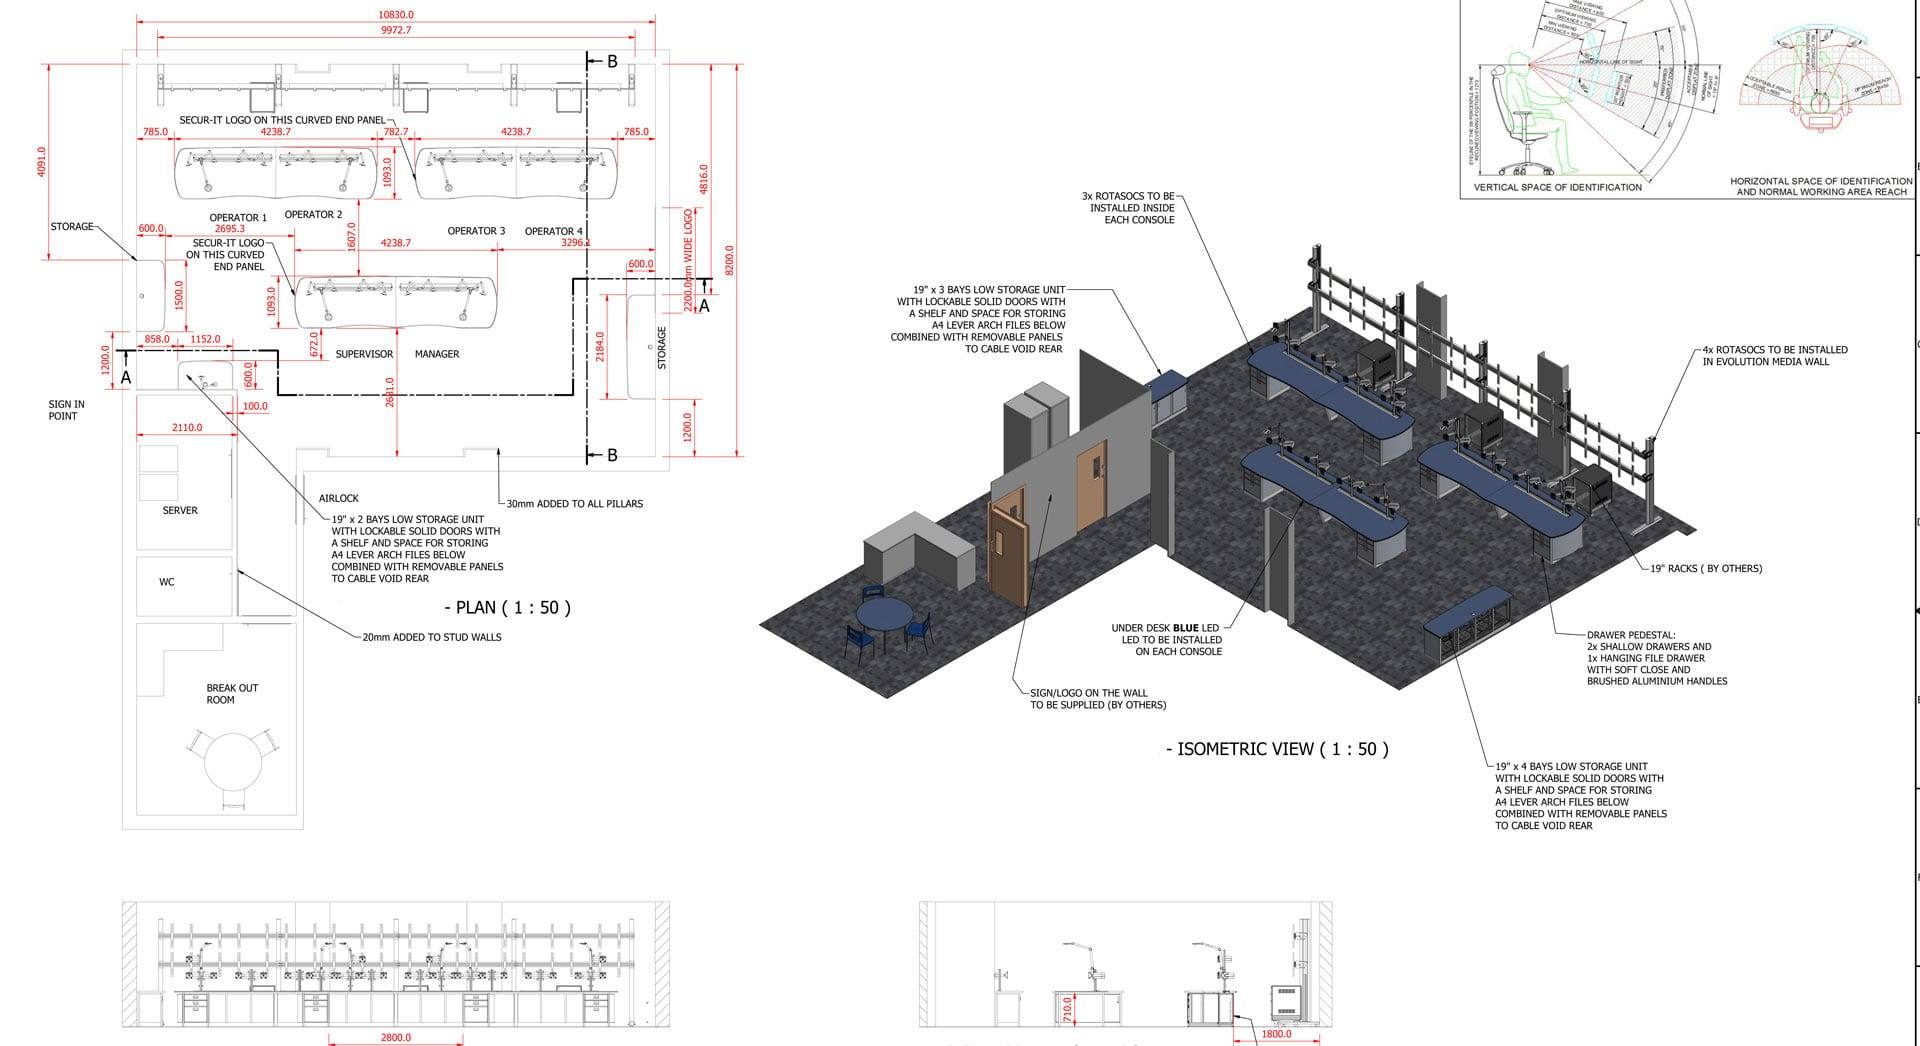 mansfield-arc-2d-proposal-drawing-thinking-space